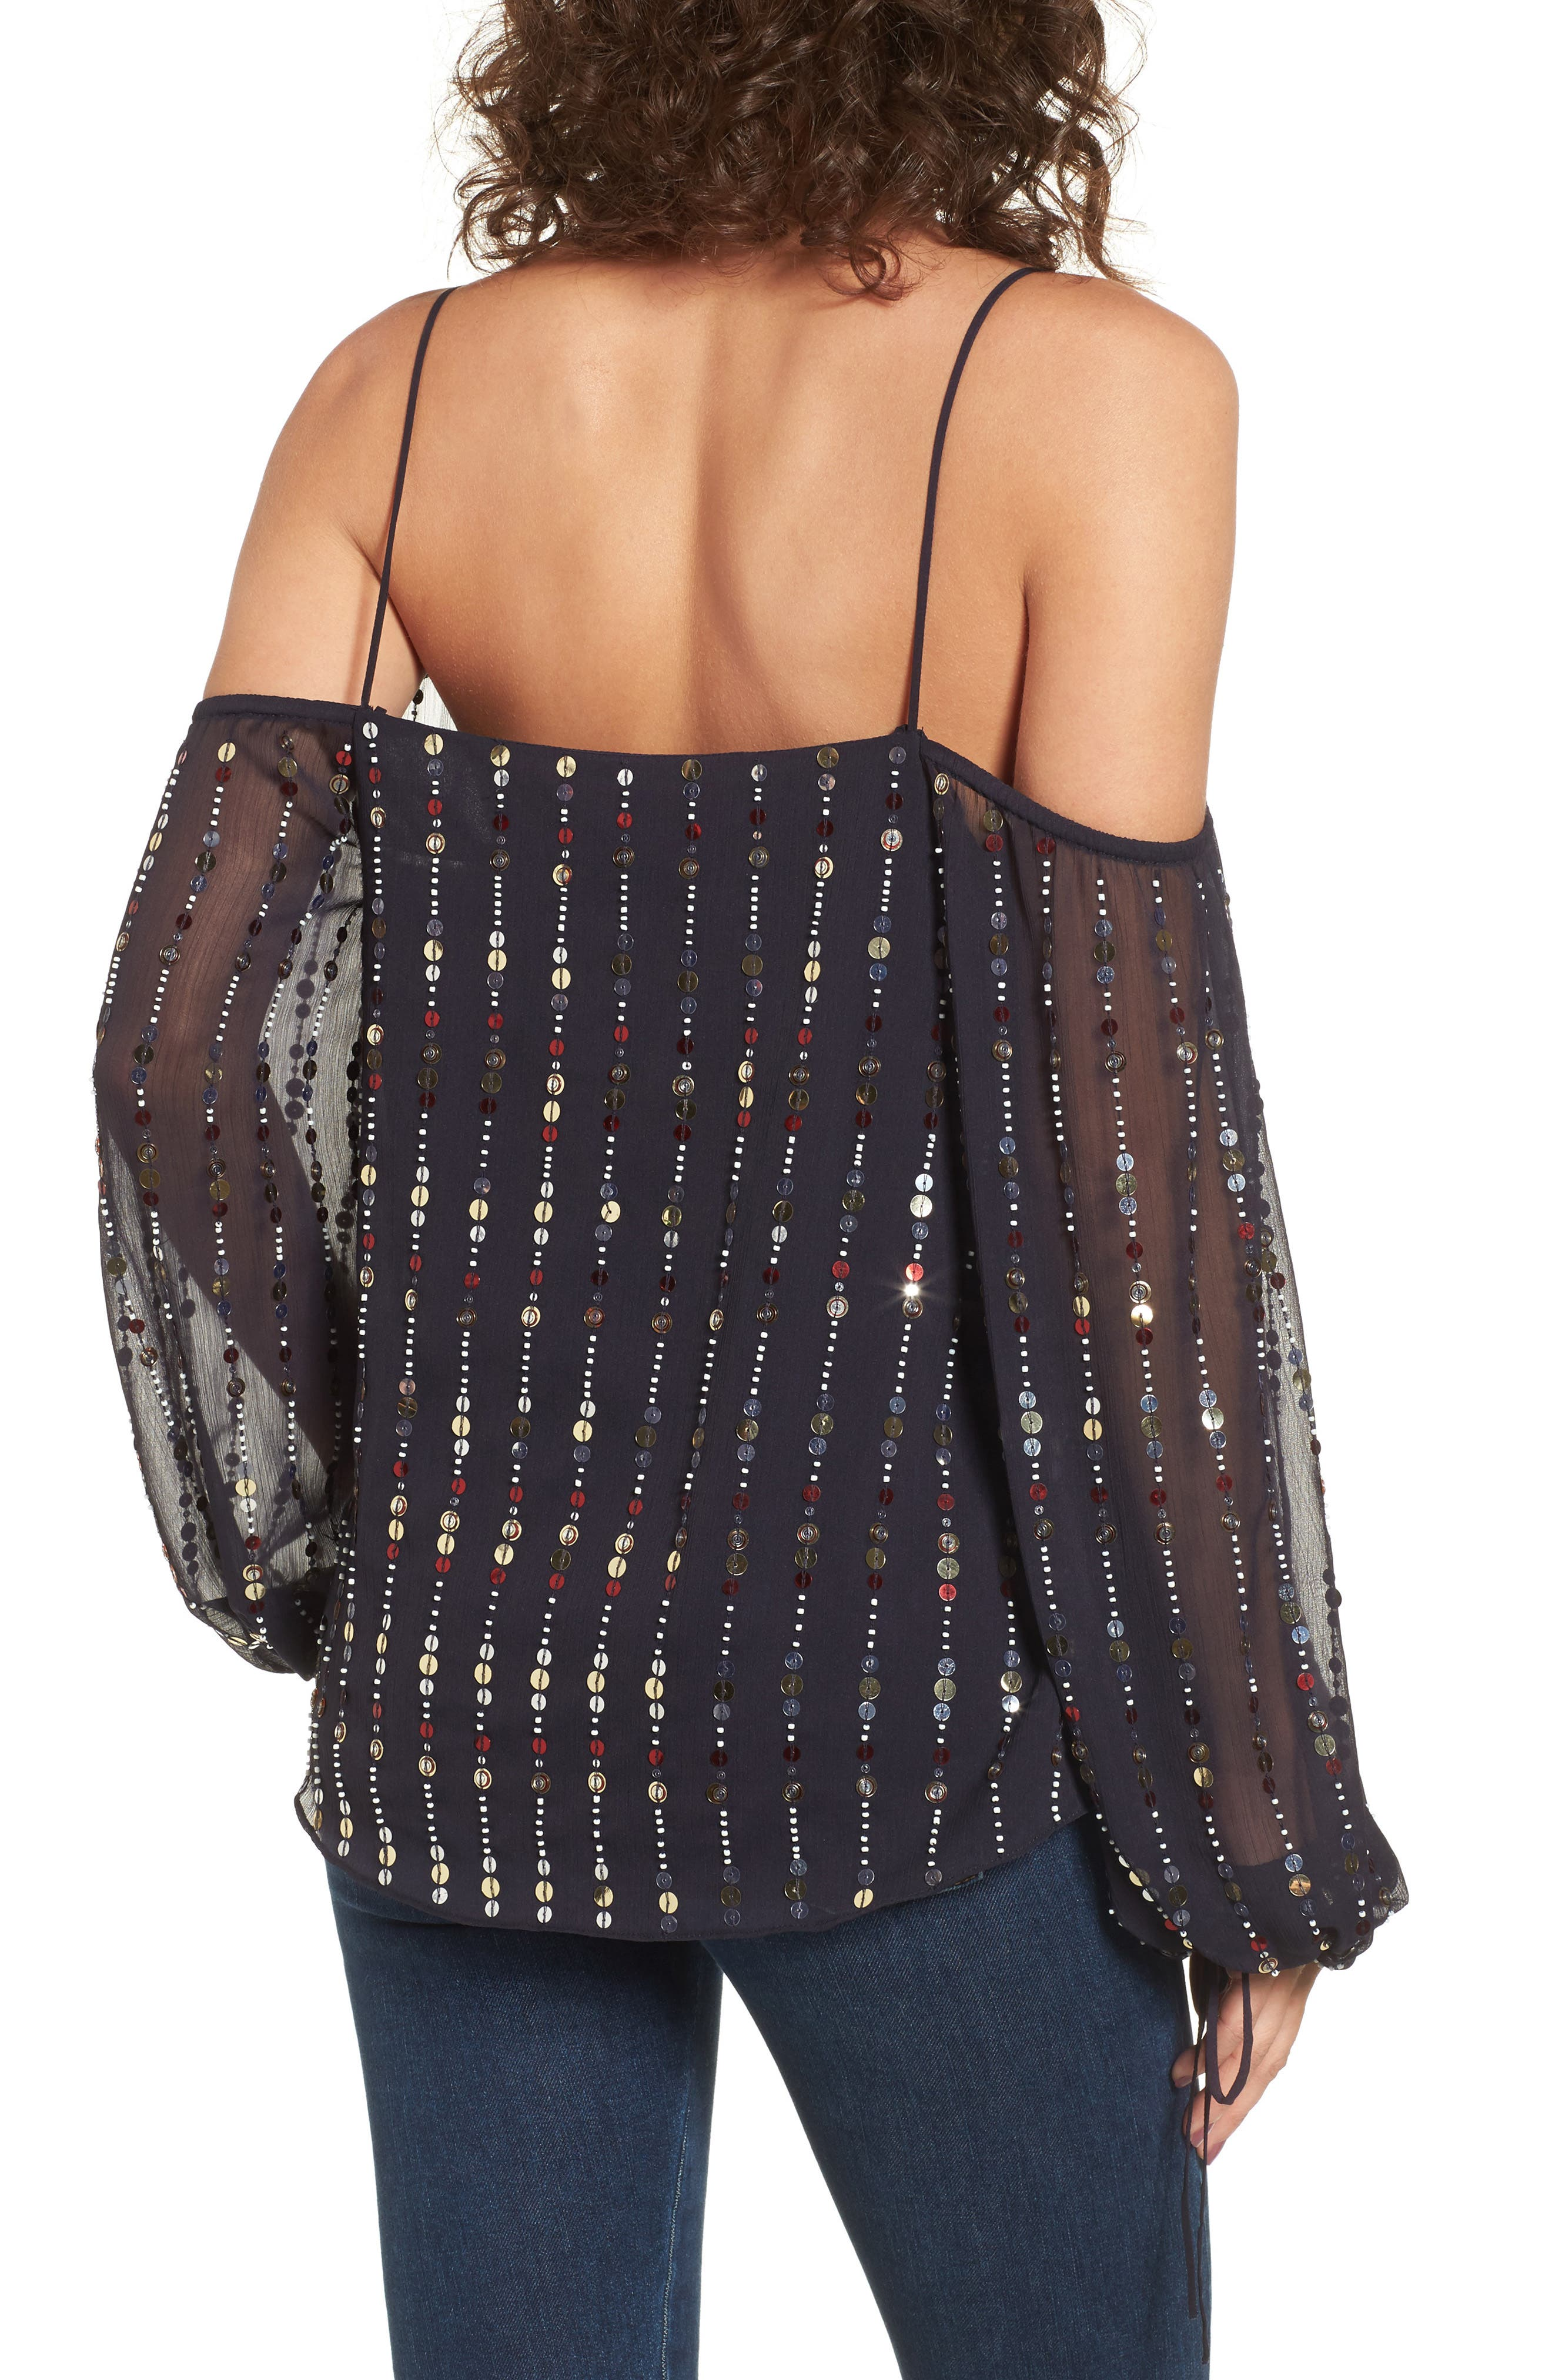 Cleo Sequin Date Night Blouse,                             Alternate thumbnail 2, color,